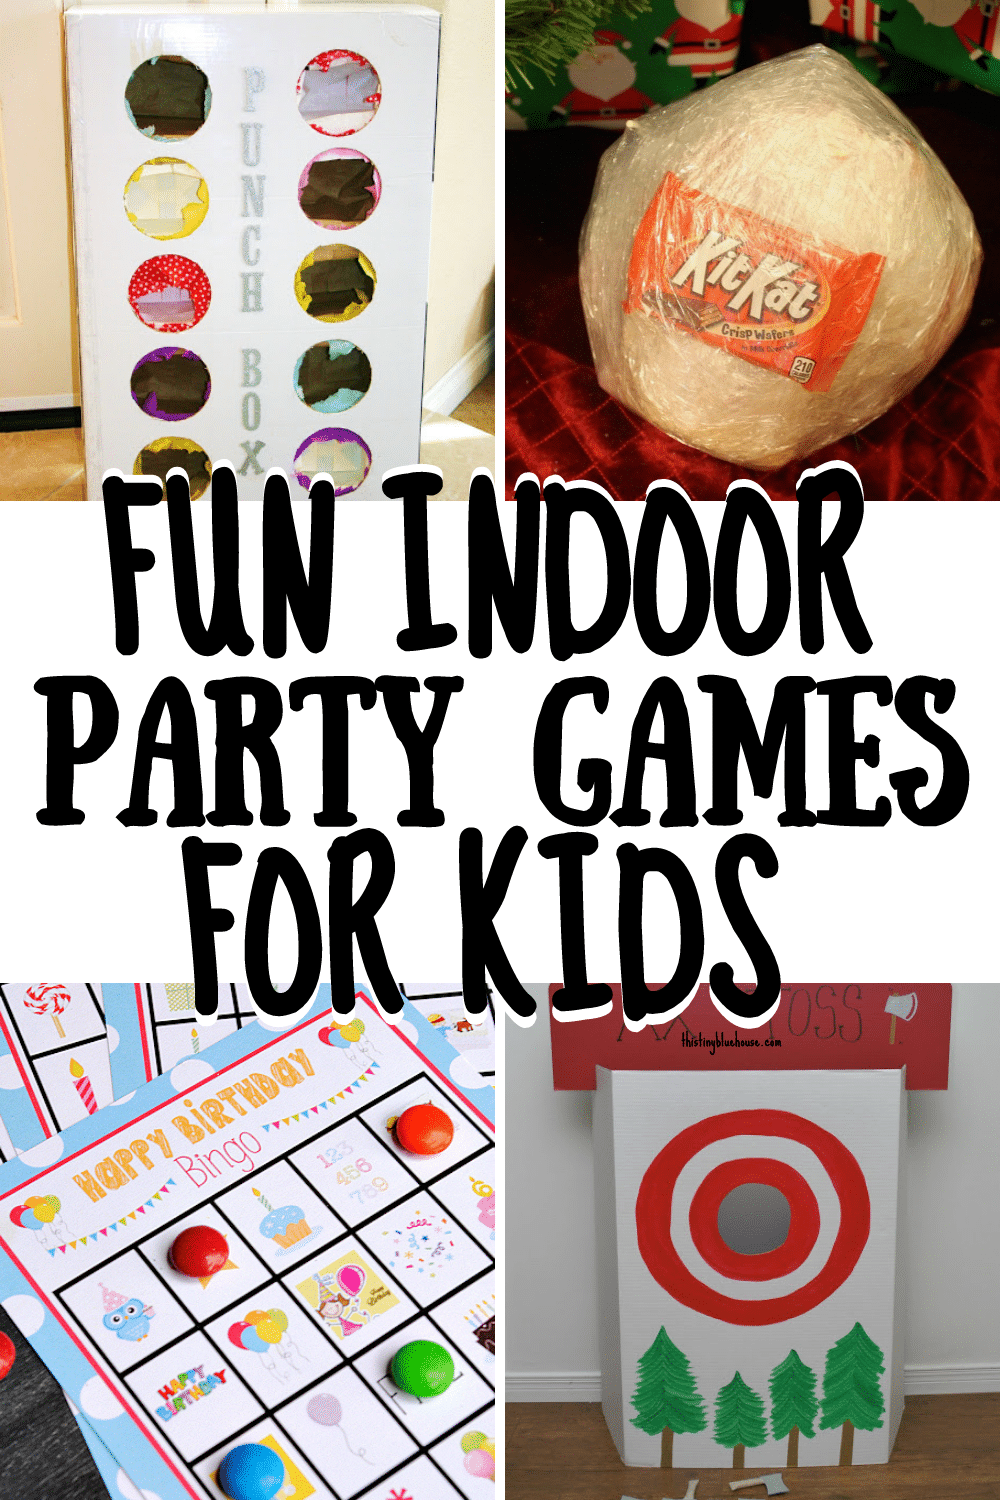 Fun Indoor Party Games For Kids